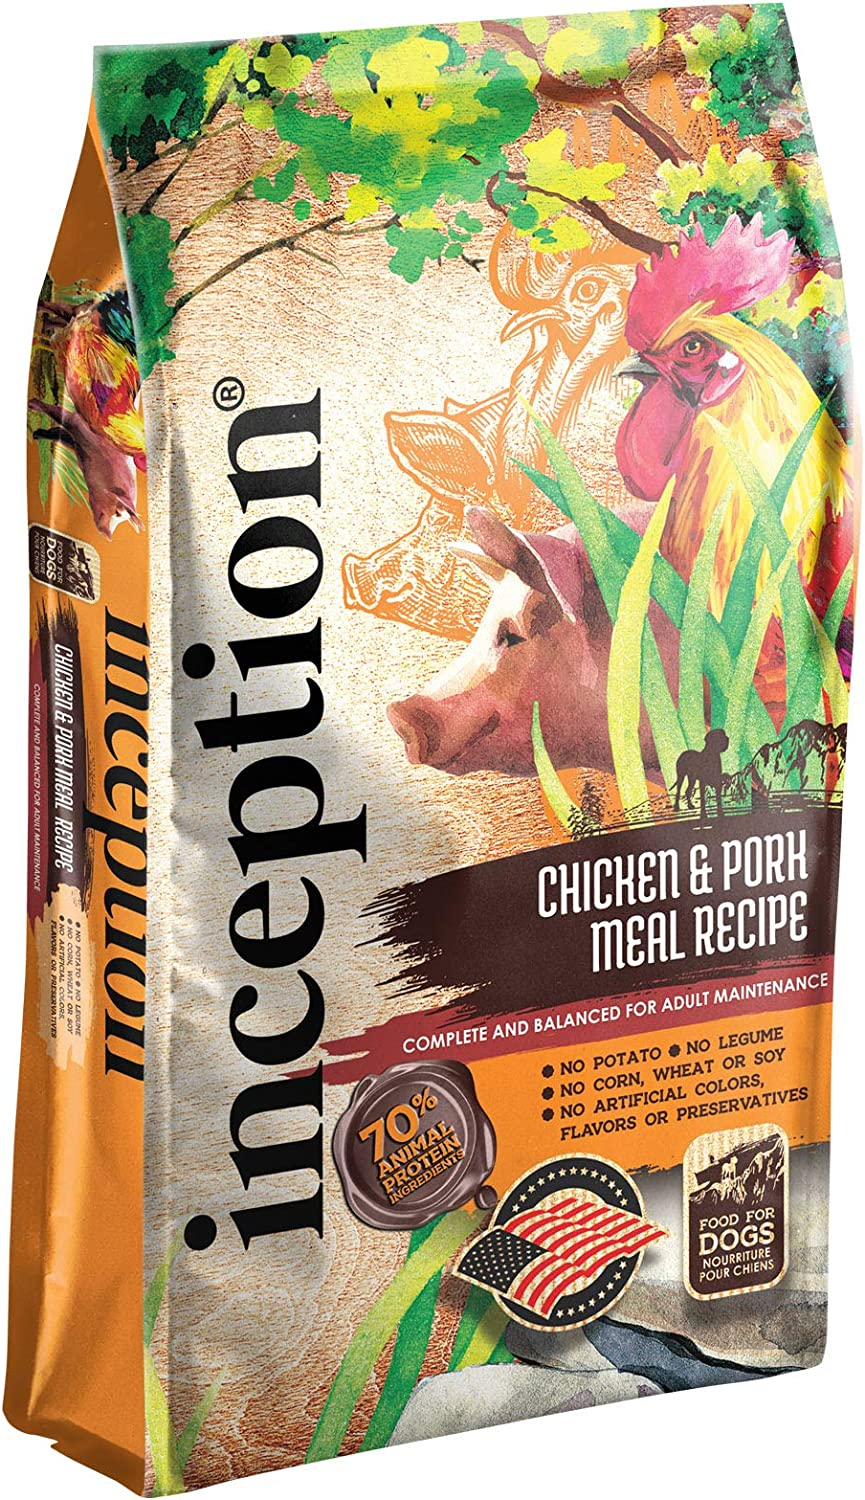 Inception Dry Dog Food – Complete and Balanced Dog Food – Meat First Legume Free Dry Dog Food